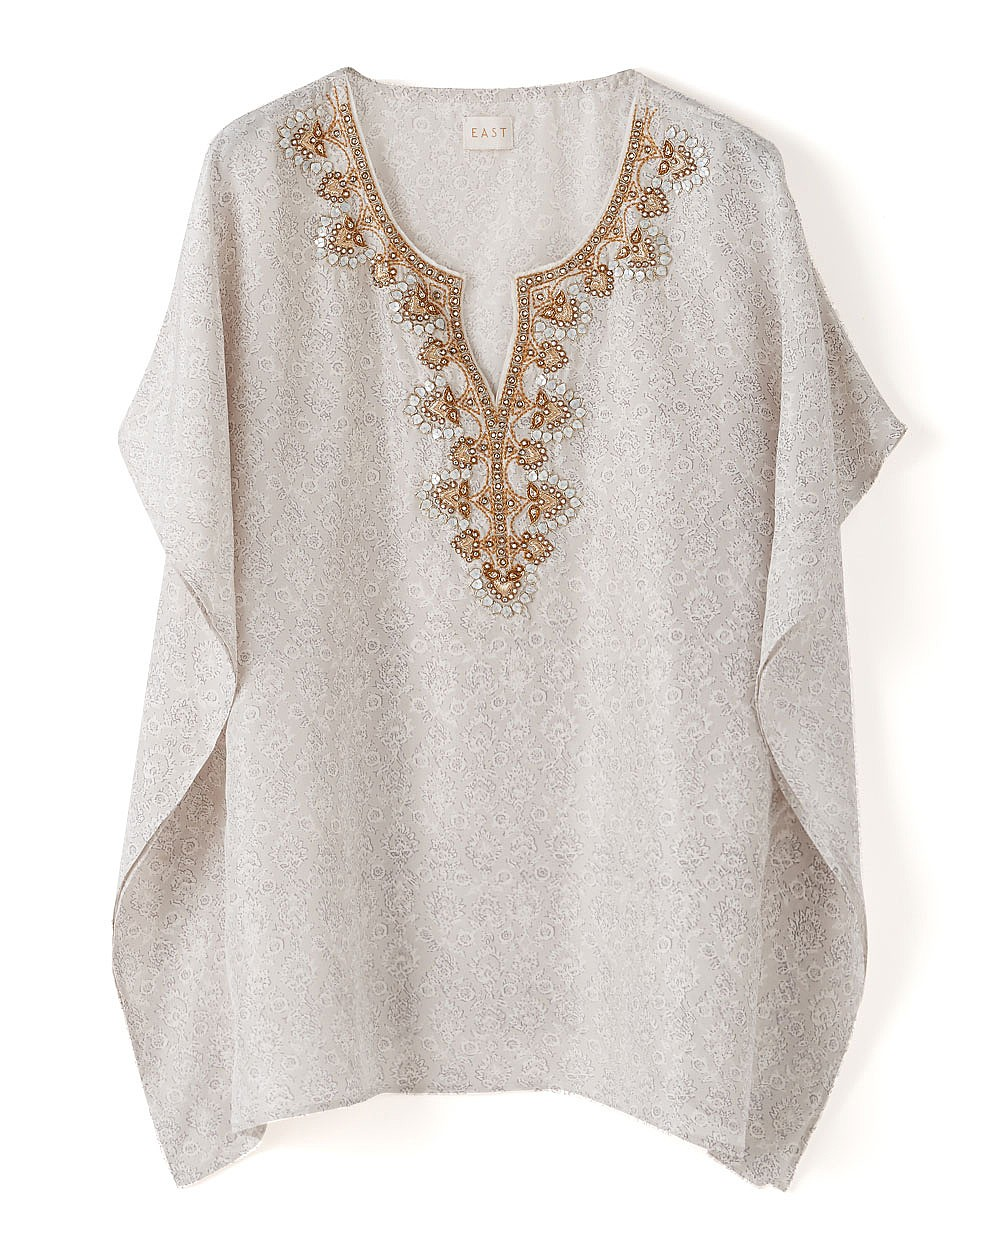 EAST Gold Embellished Silk Tunic £150